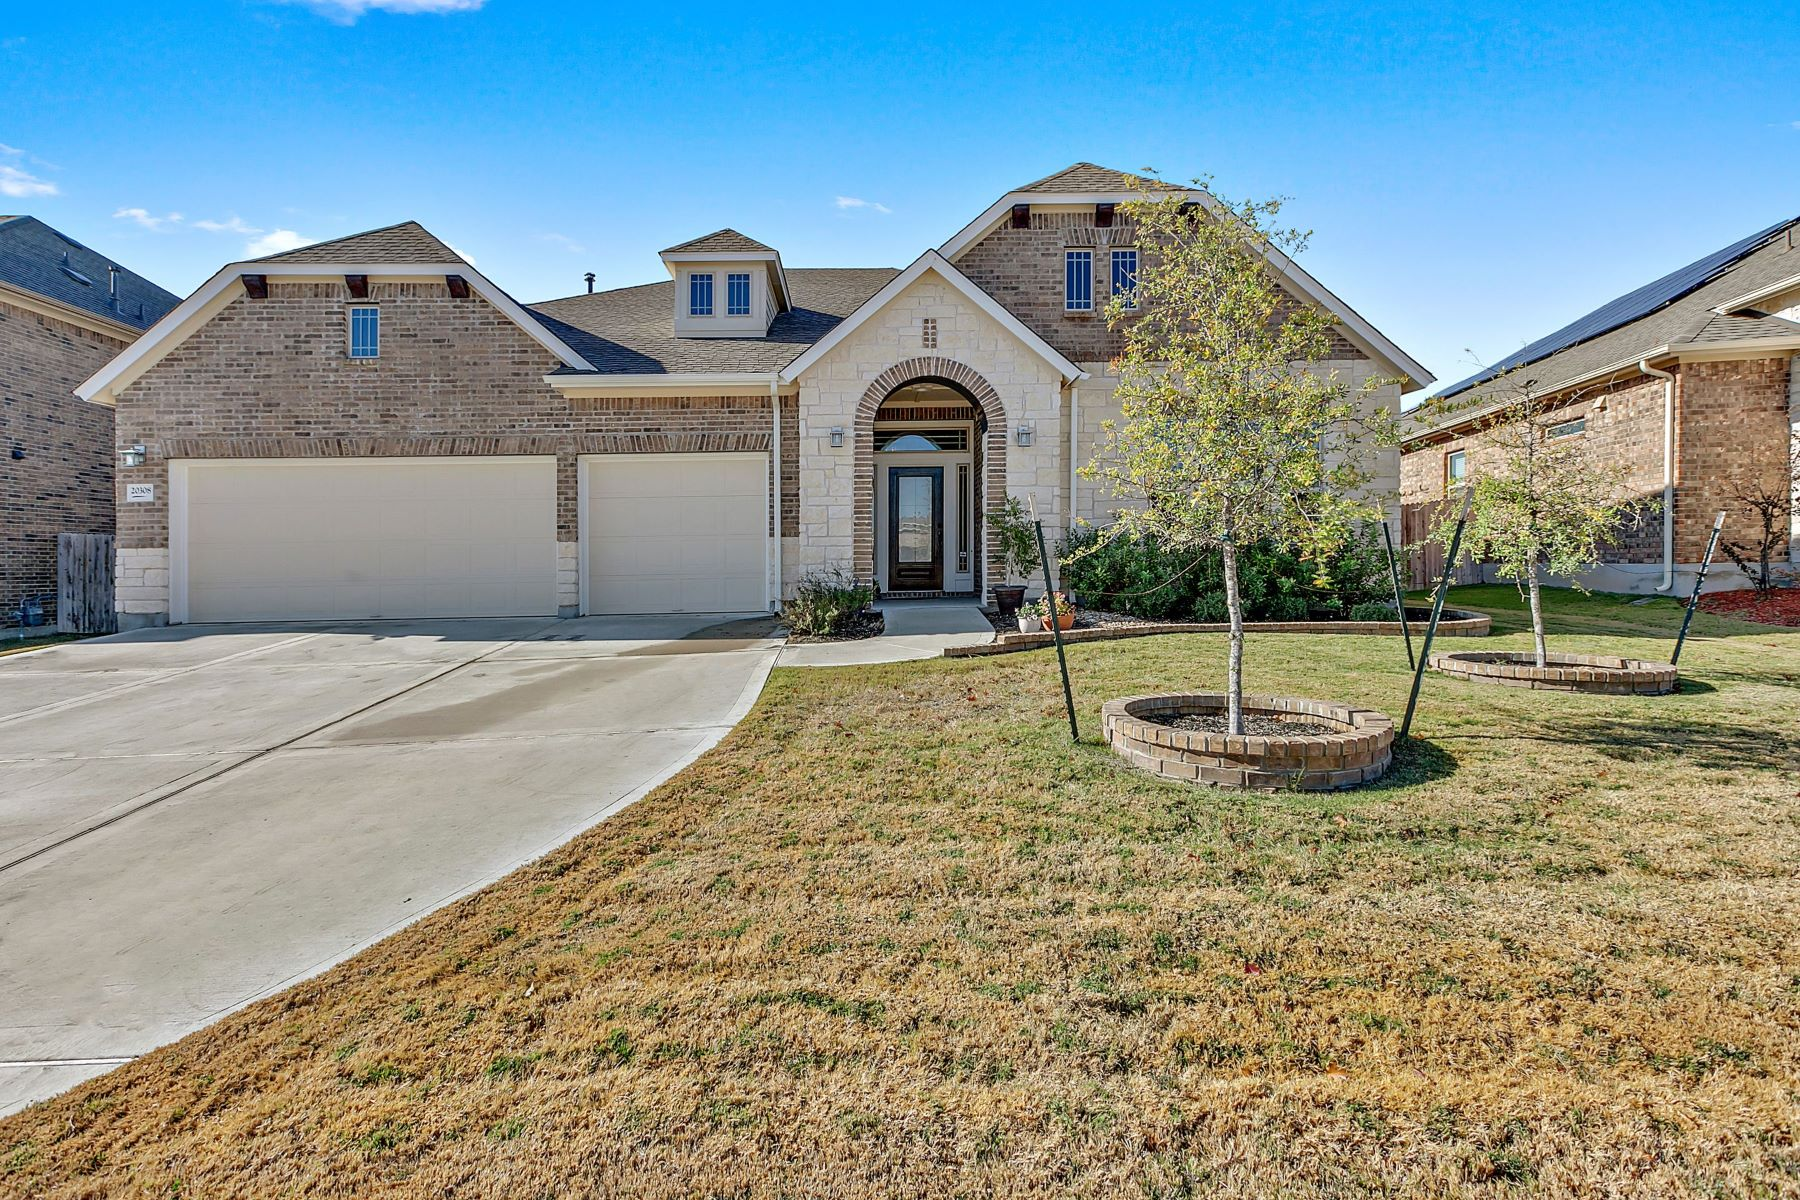 Single Family Homes for Active at 20308 Martin Lane, Pflugerville, TX 78660 20308 Martin Lane Pflugerville, Texas 78660 United States